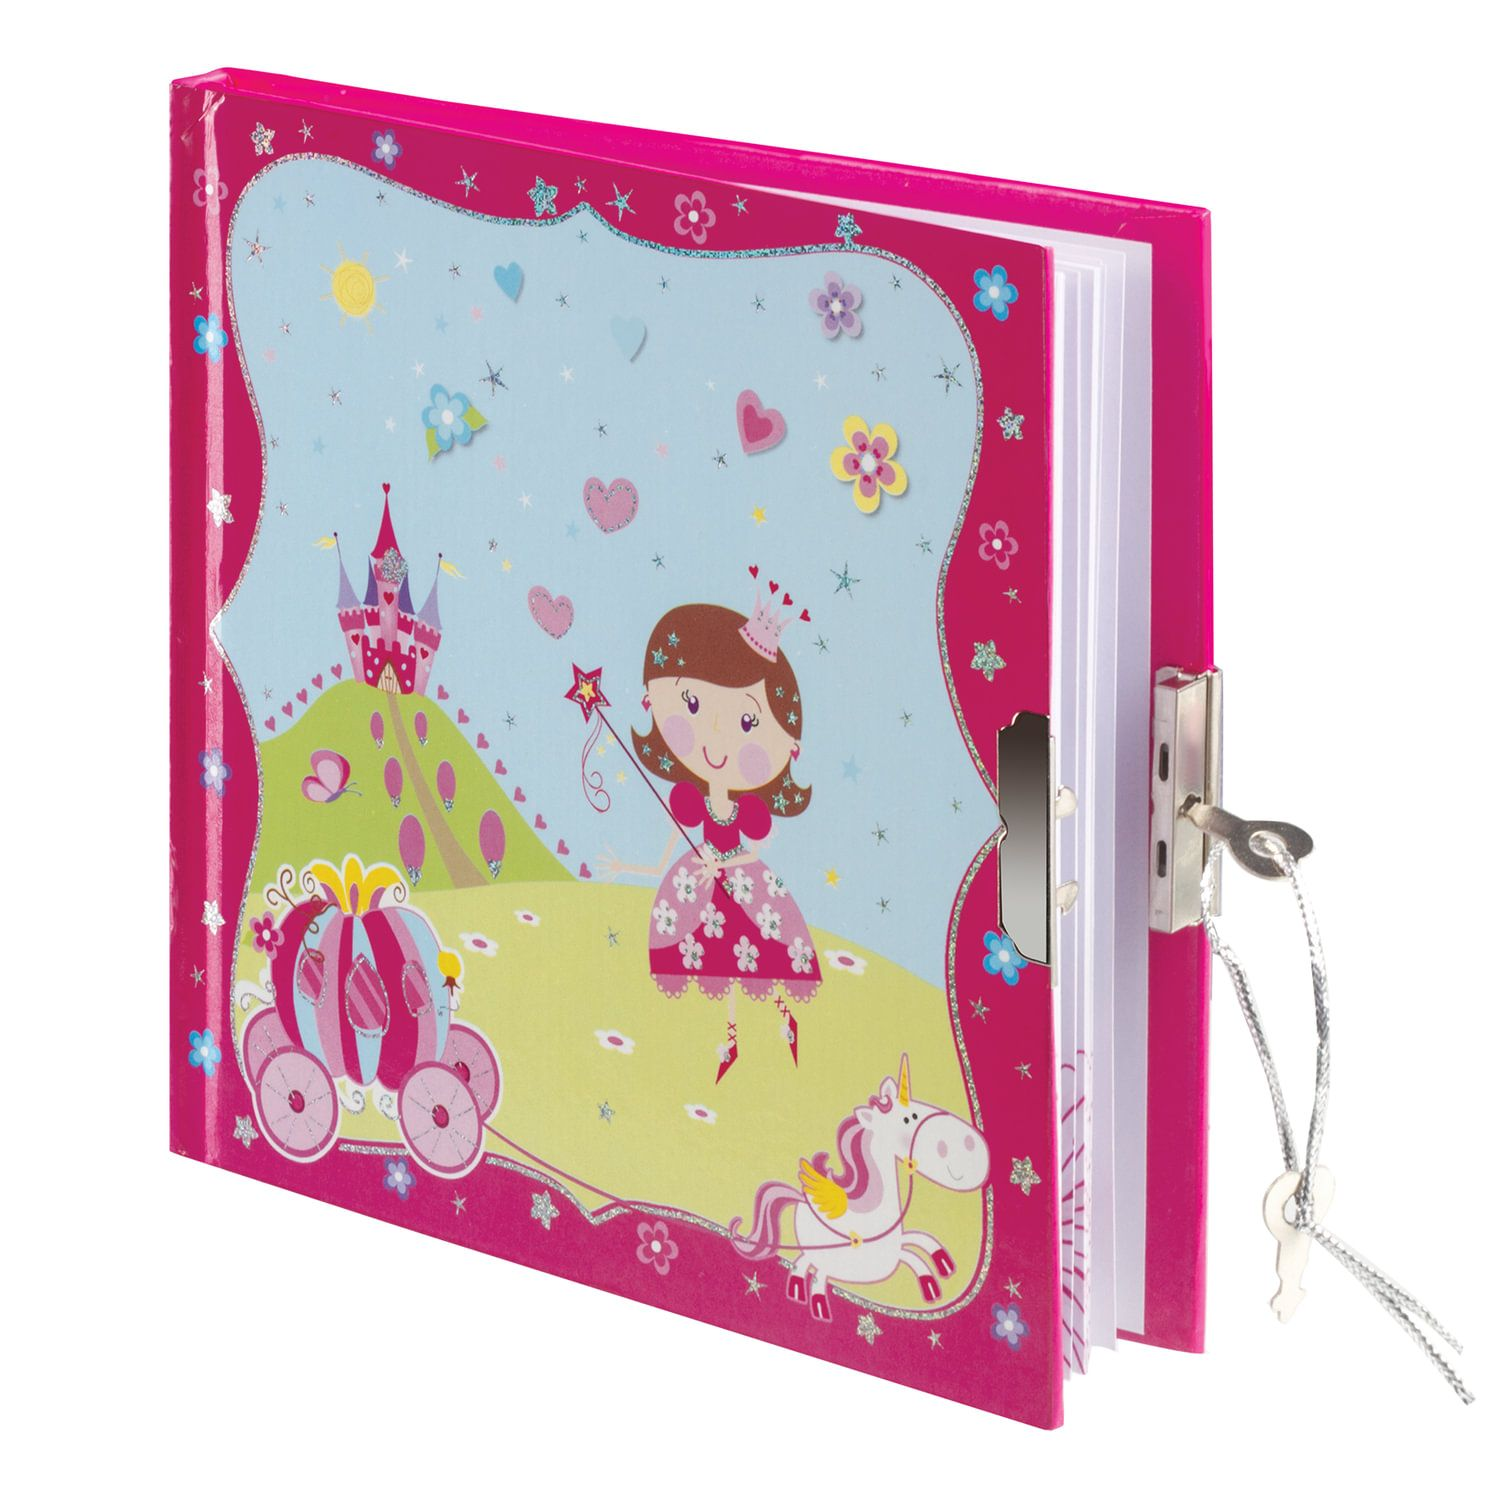 """BRAUBERG / Notebook """"Princess"""" SMALL FORMAT 60 sheets A6, 135x135 mm, hardcover, metal lock, sequins, line"""